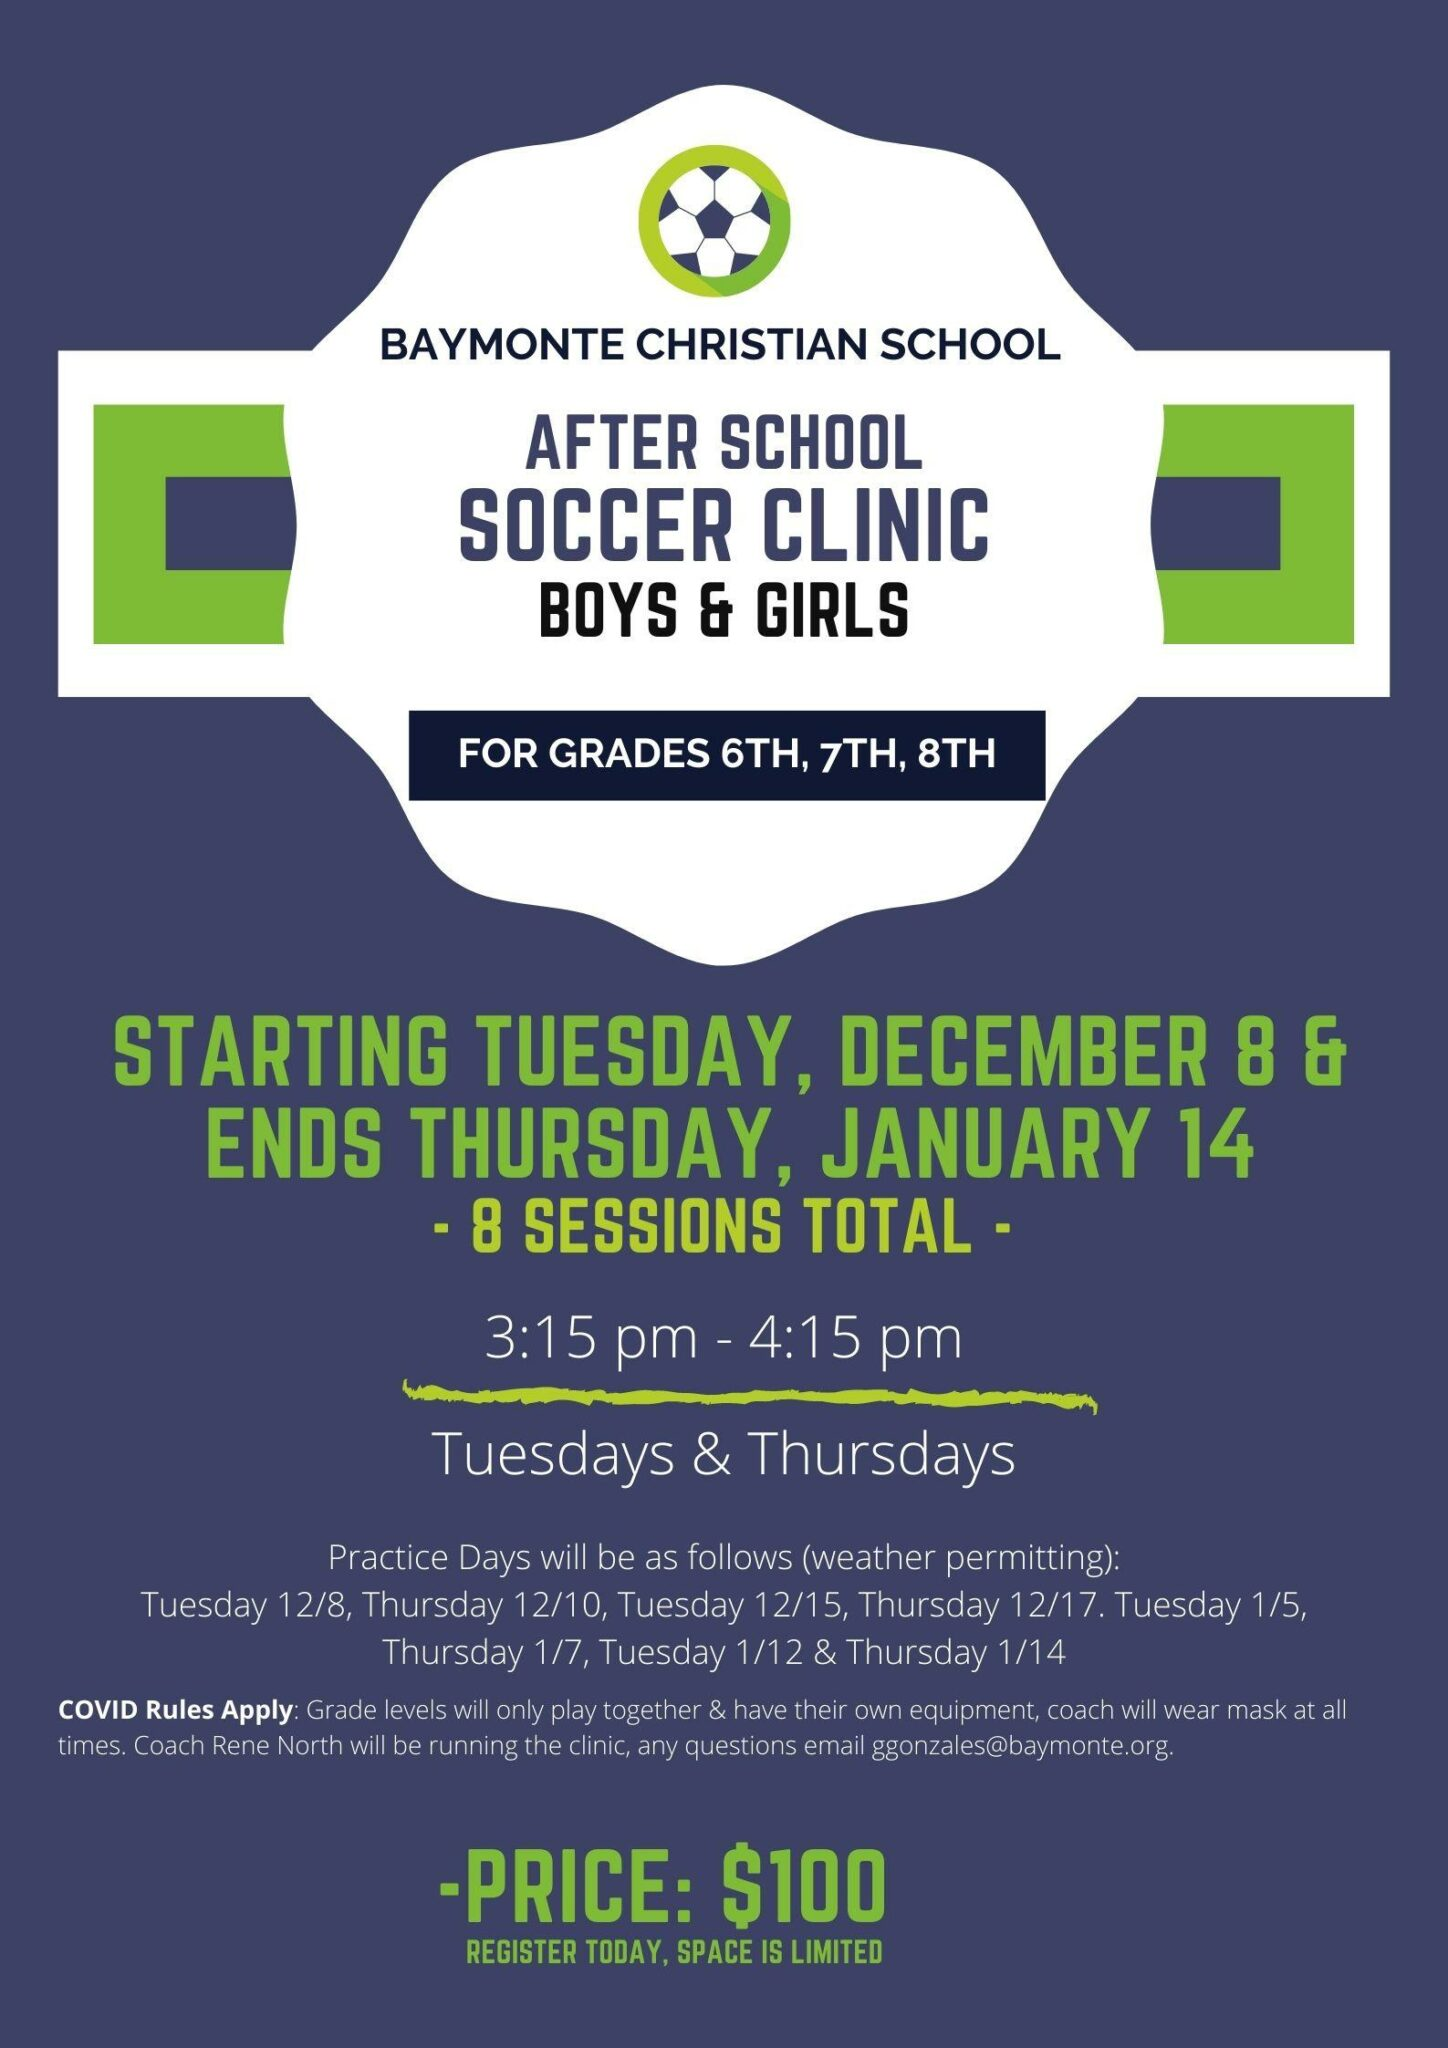 After School Soccer Clinic Offered to BCS Middle School Students